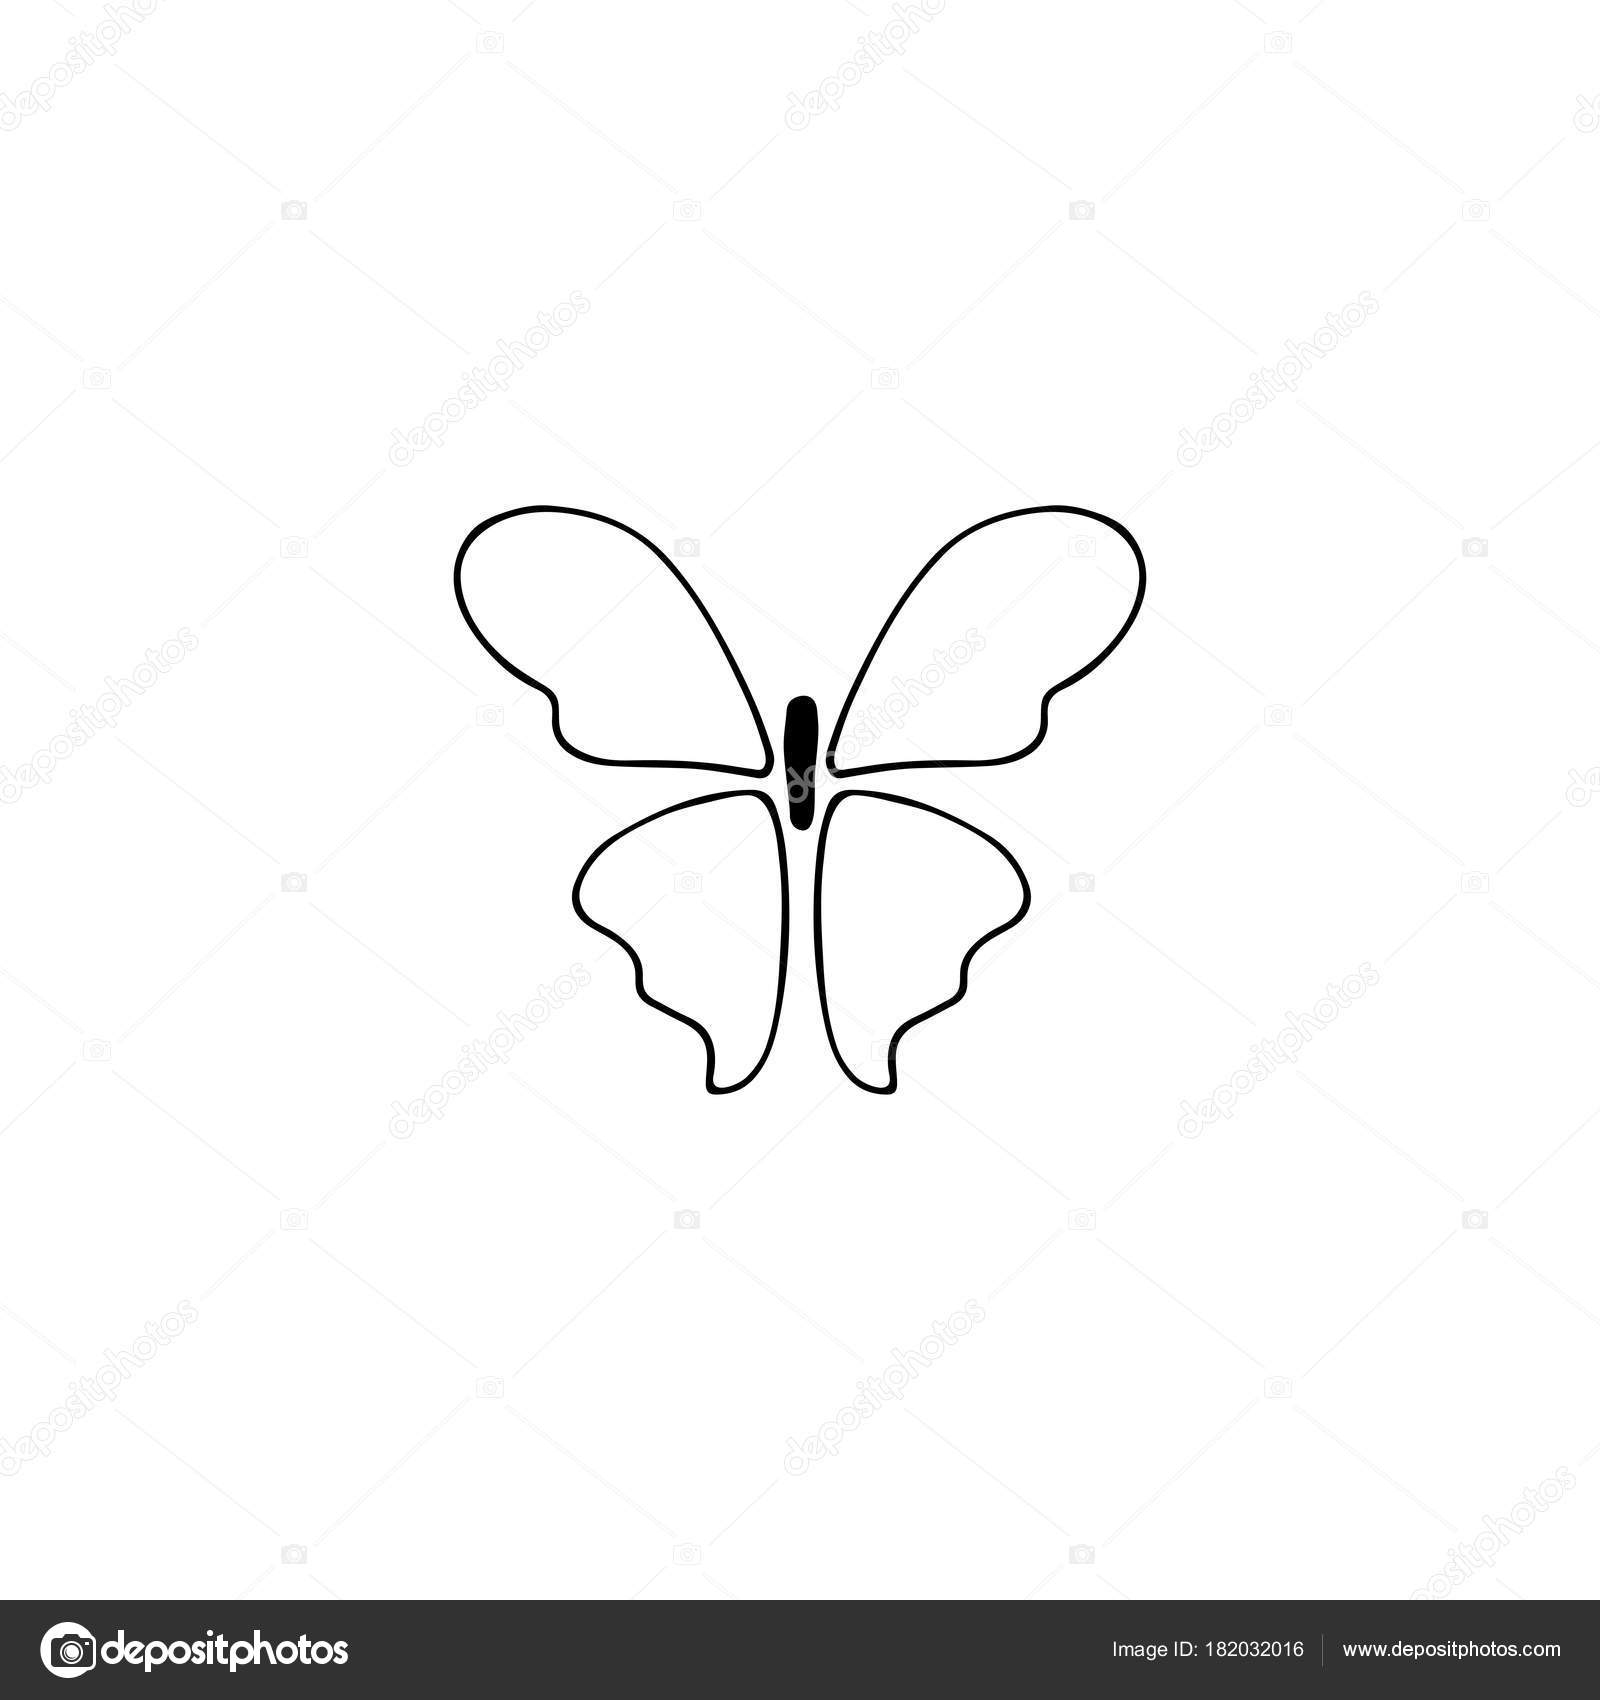 Butterfly logo element stock vector juliakhimich 182032016 vector hand drawn object butterfly silhouette feminine logo element romantic clipart for business branding and identity black on white isolated symbol biocorpaavc Image collections